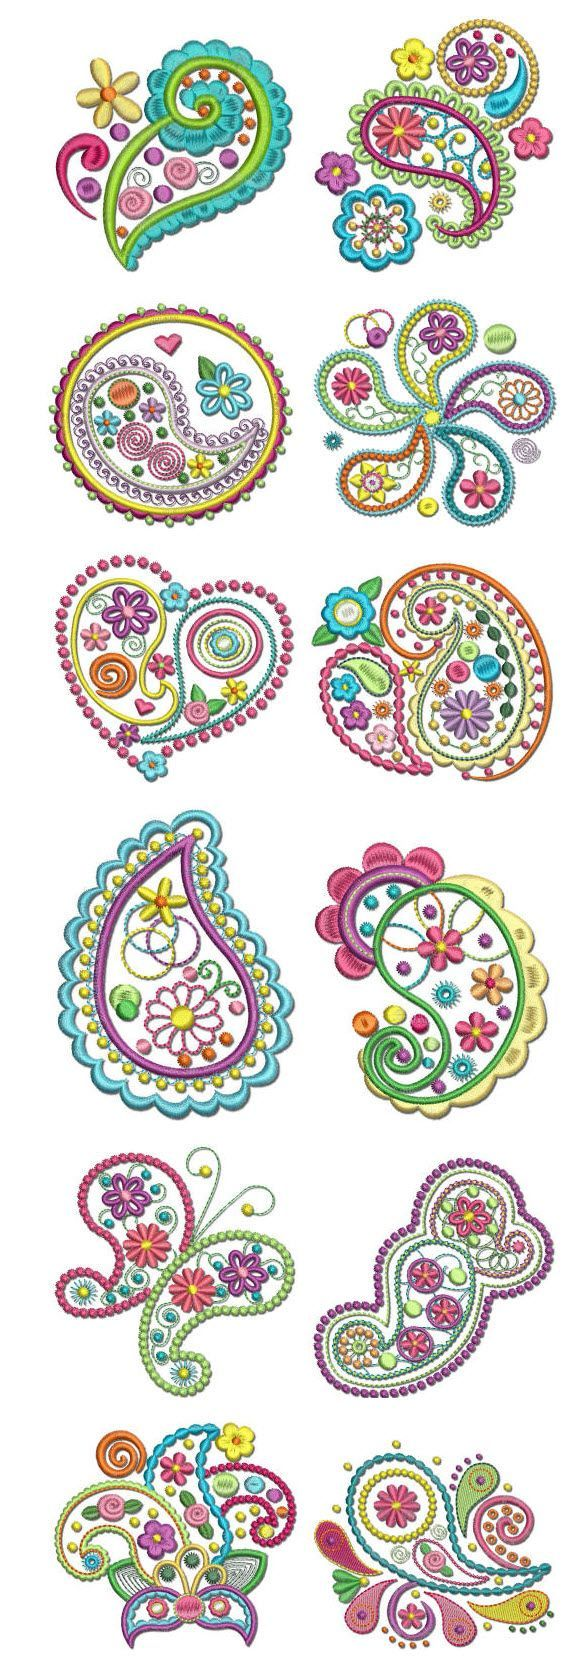 Crazy for paisley free designs Вышивка pinterest beach themed